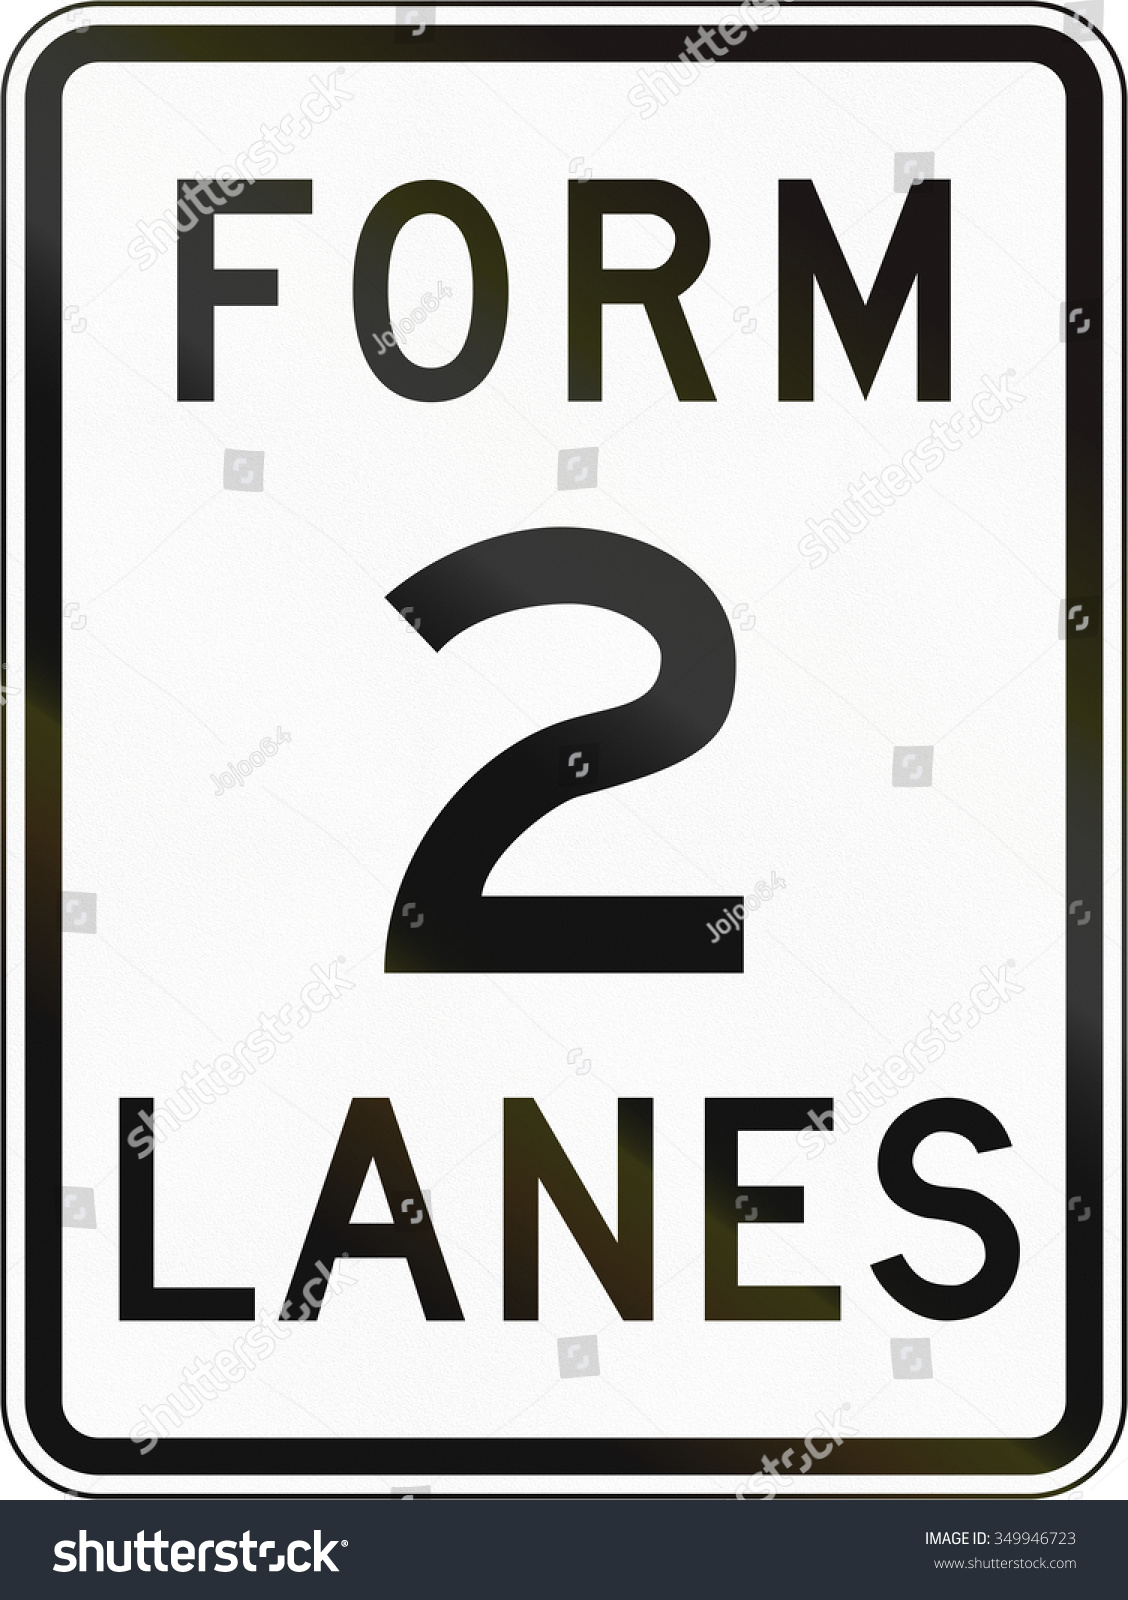 Road sign philippines form 2 lanes stock illustration 349946723 road sign in the philippines form 2 lanes buycottarizona Image collections